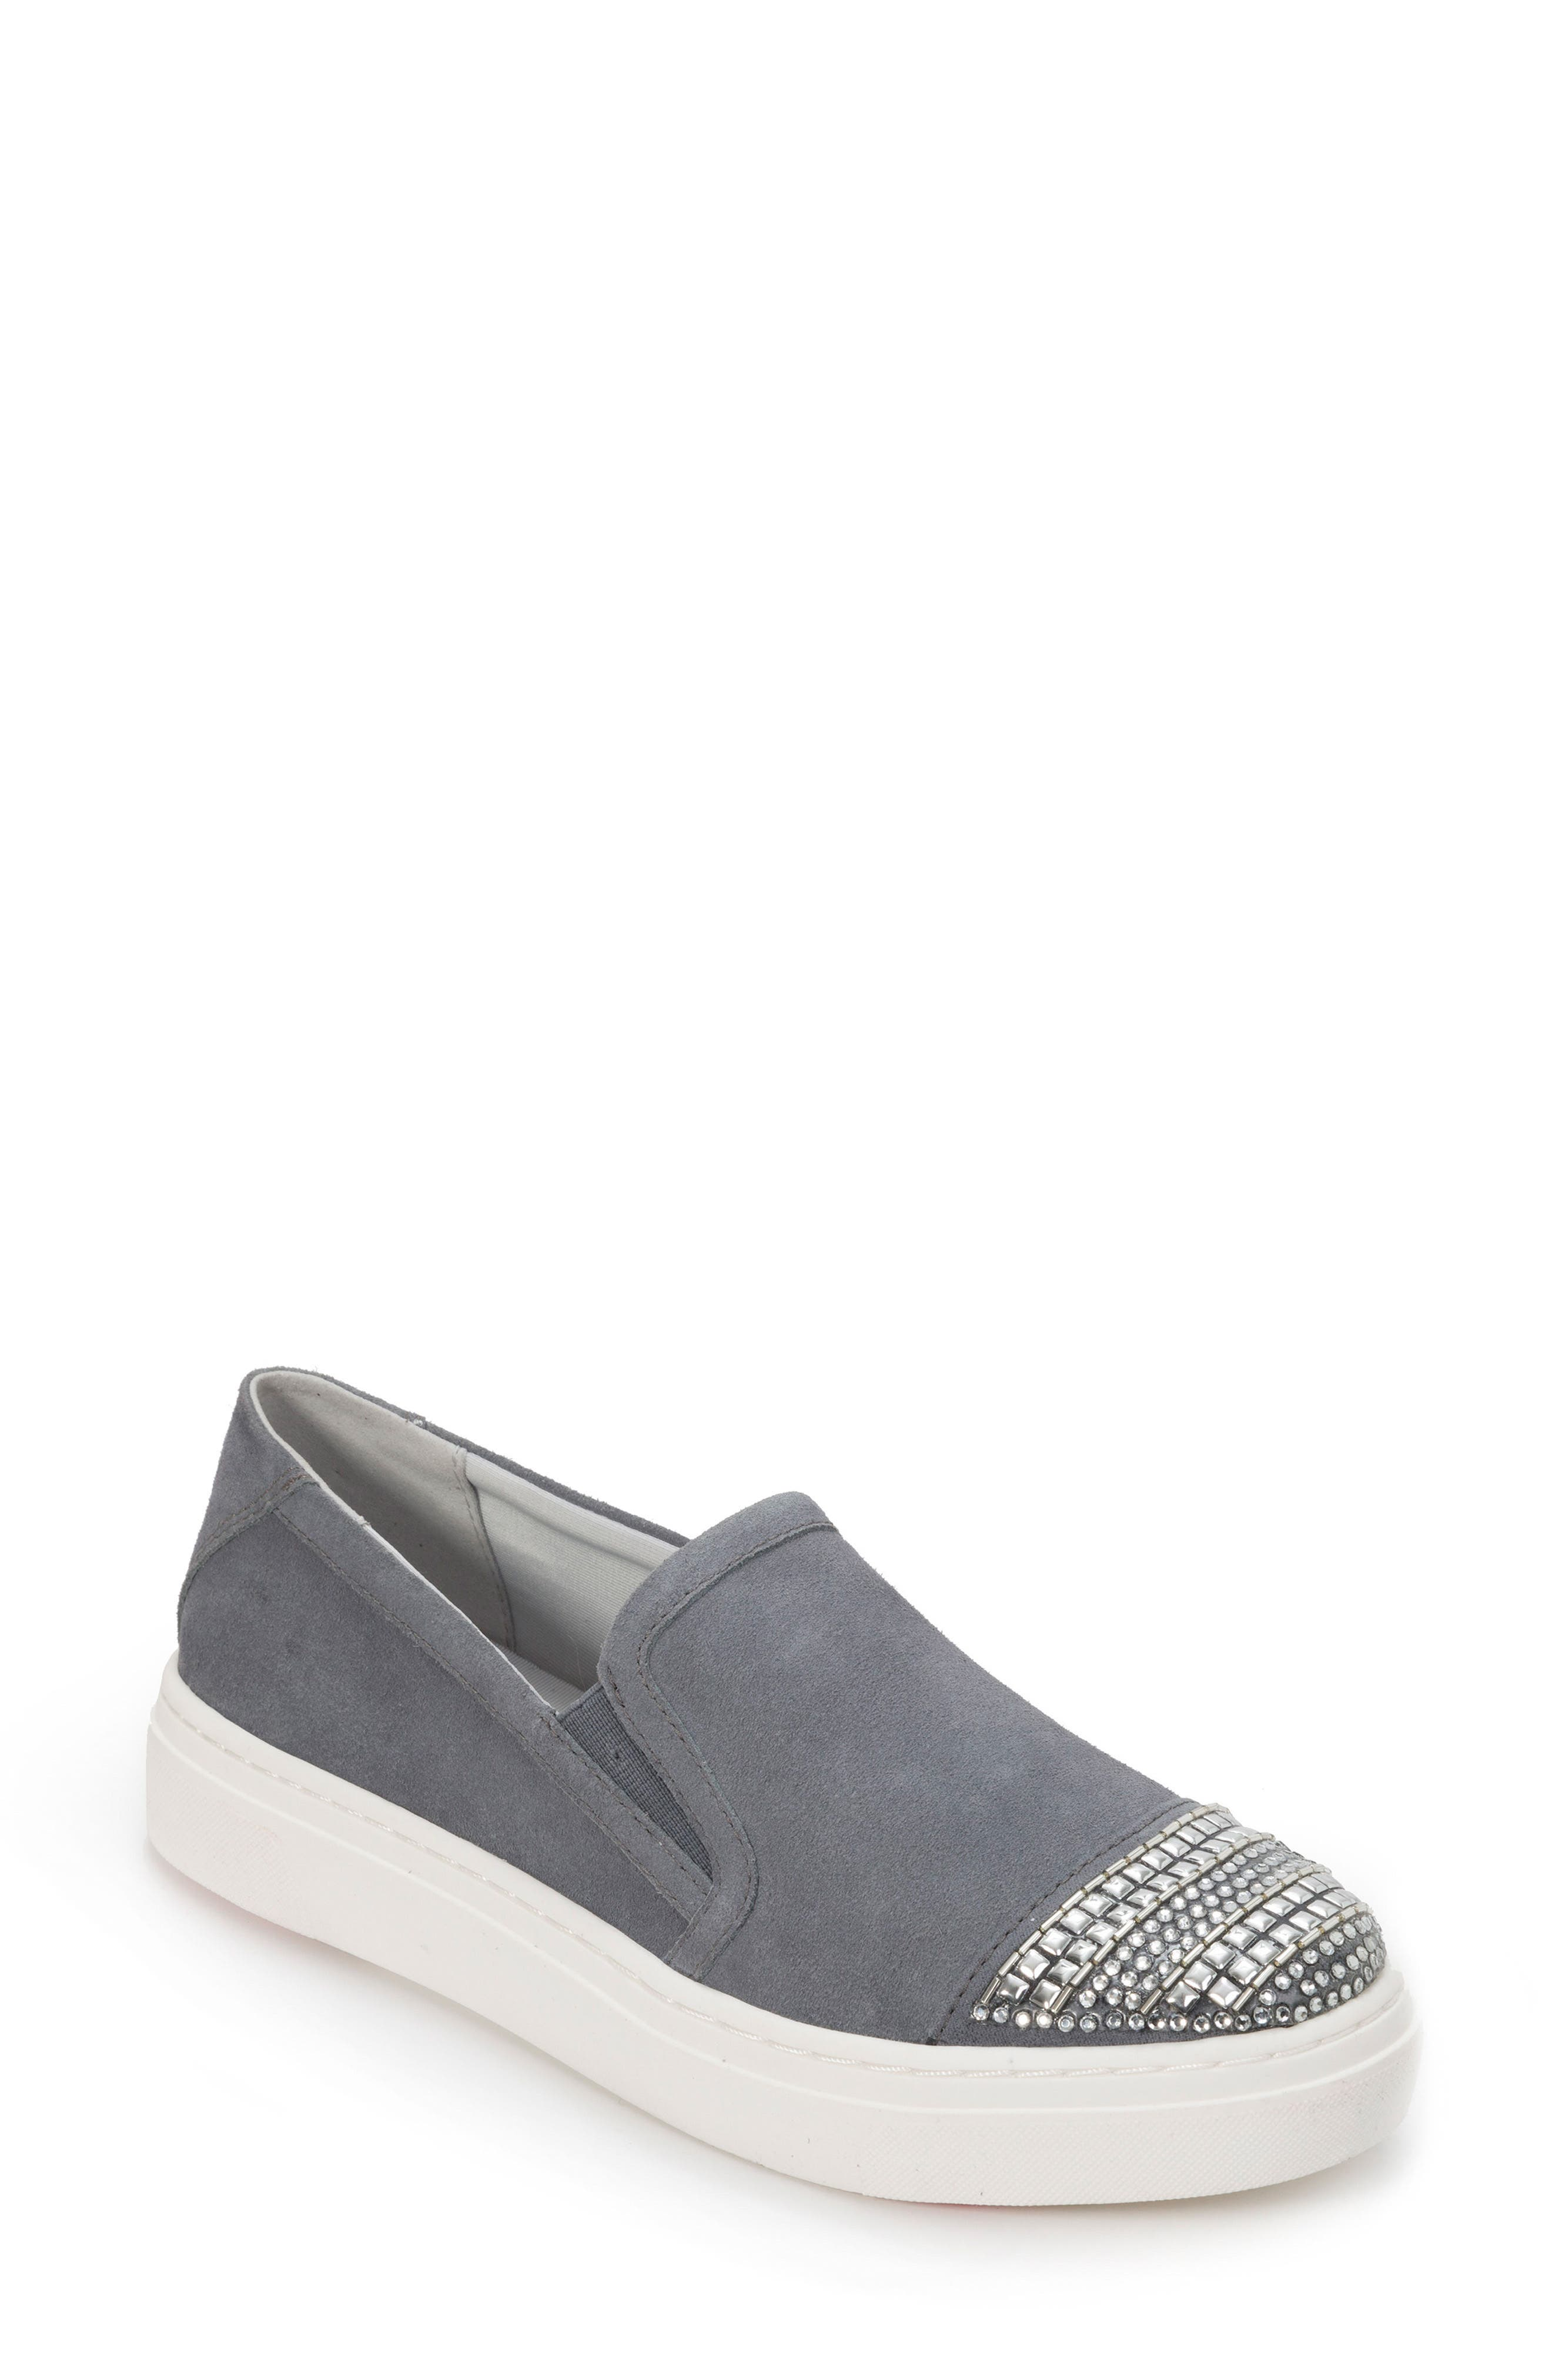 Finley Slip-On Sneaker,                             Main thumbnail 1, color,                             Denim Blue Suede